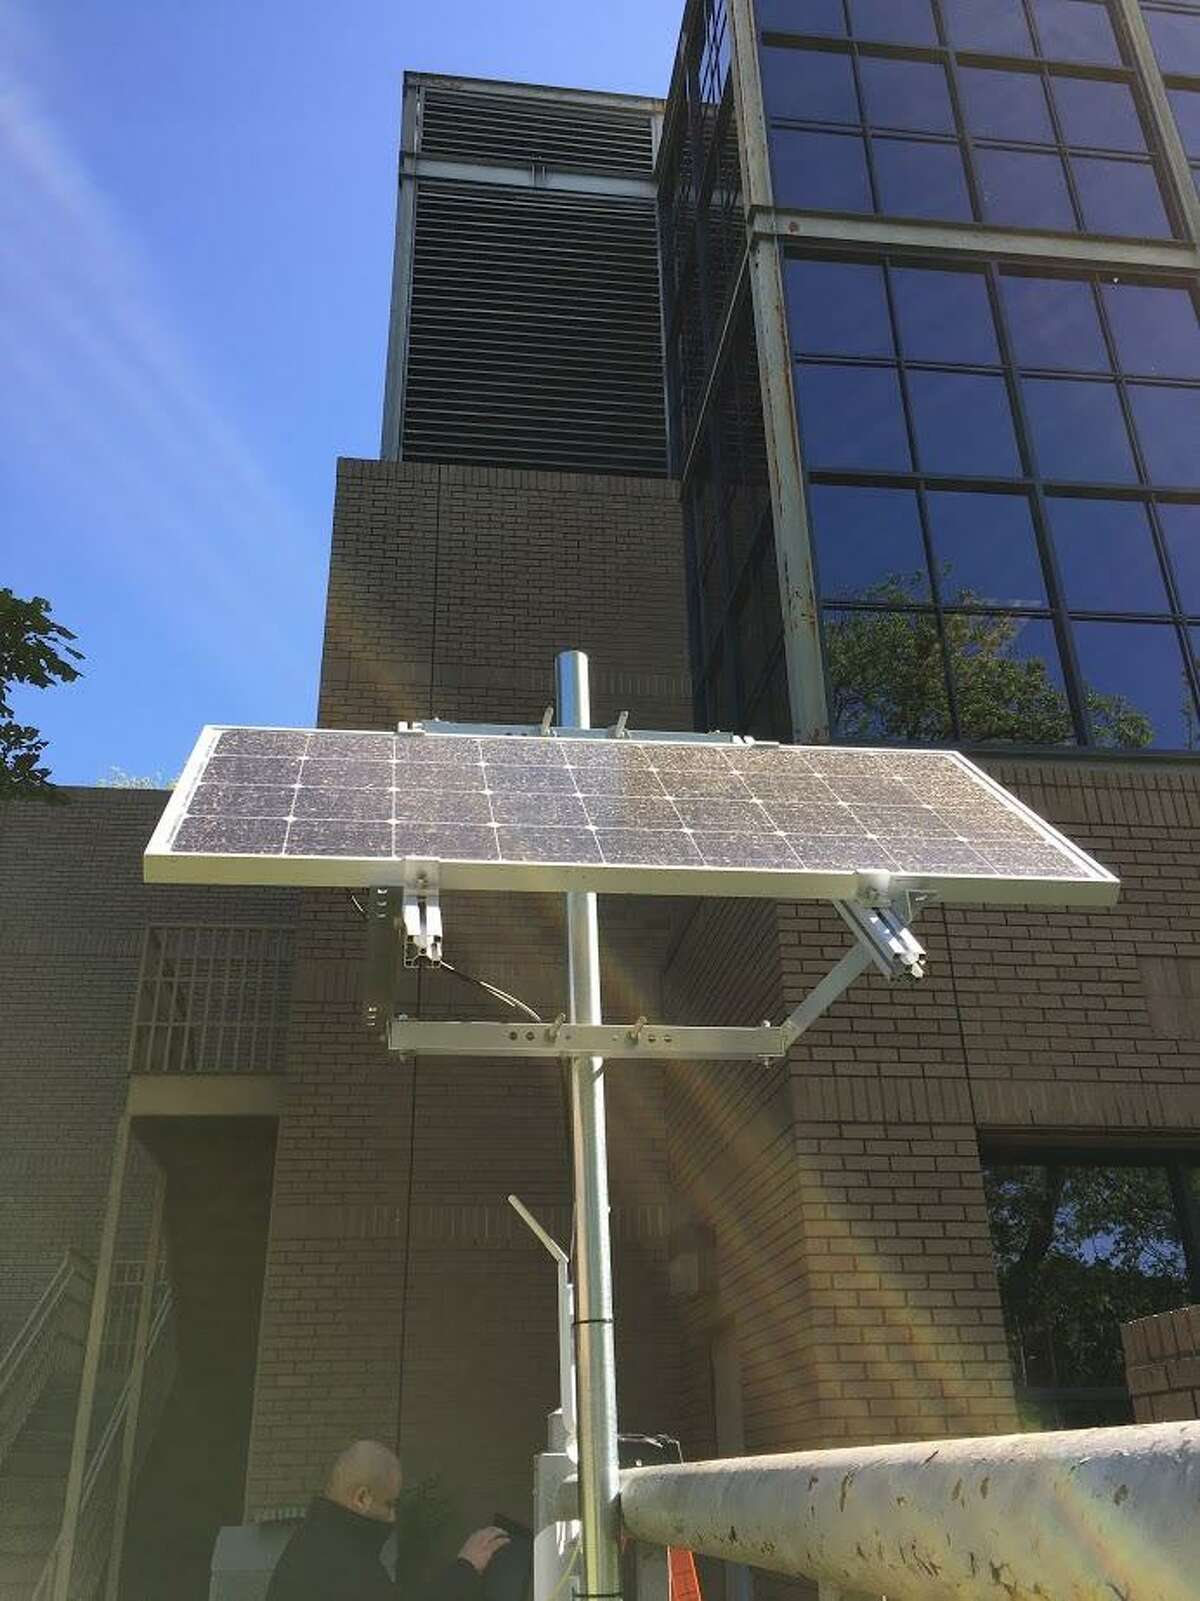 A prototype for a solar mesh Wi-Fi system is in use in the backyard of the San Antonio Housing Authority's headquarters at 818 South Flores St.